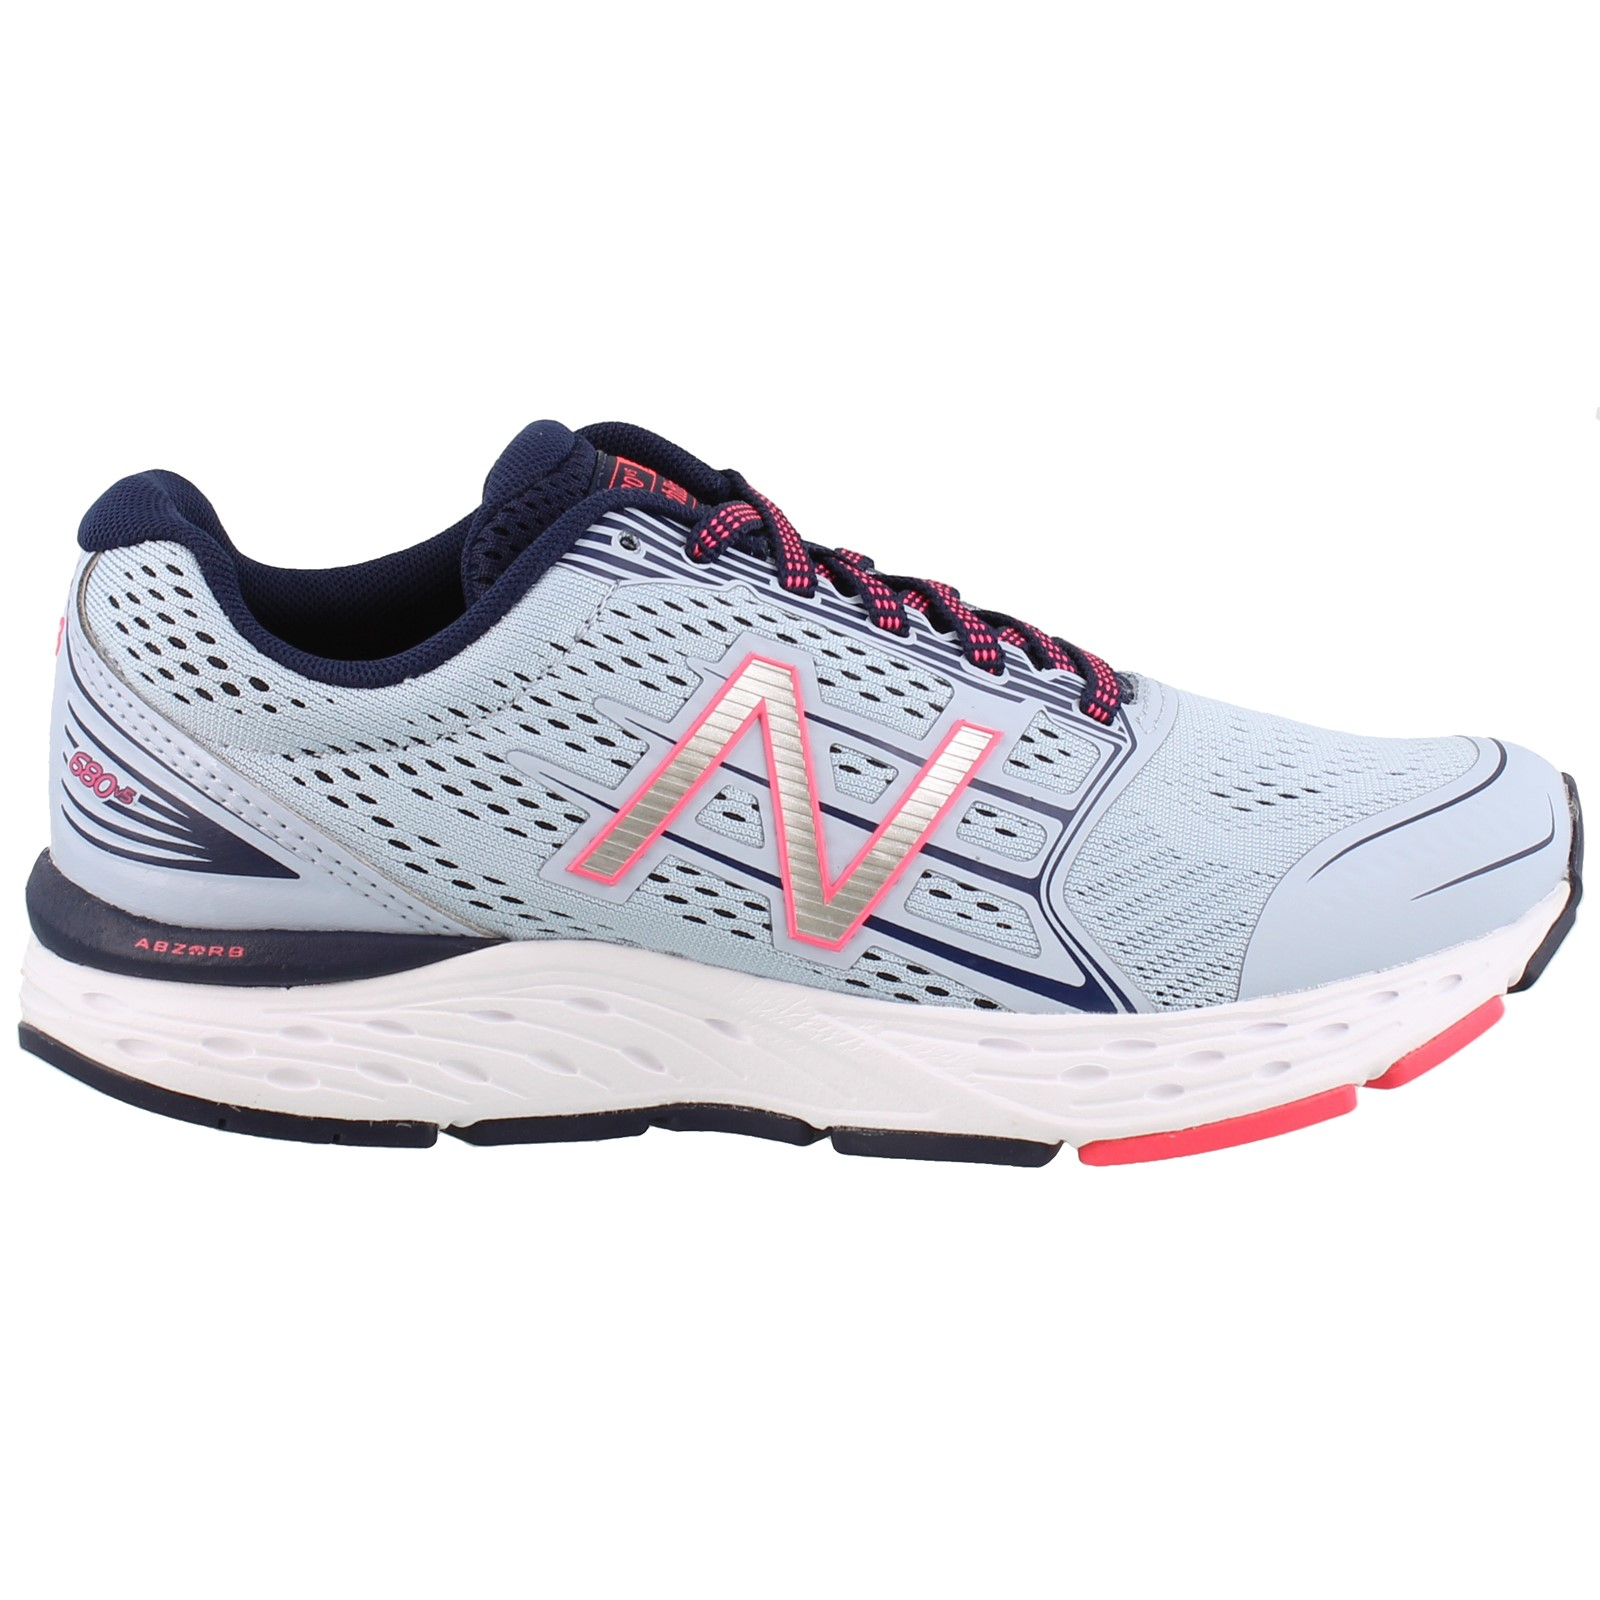 New Balance Mens 680v5 Running Shoes Sports Training Gym Sneakers